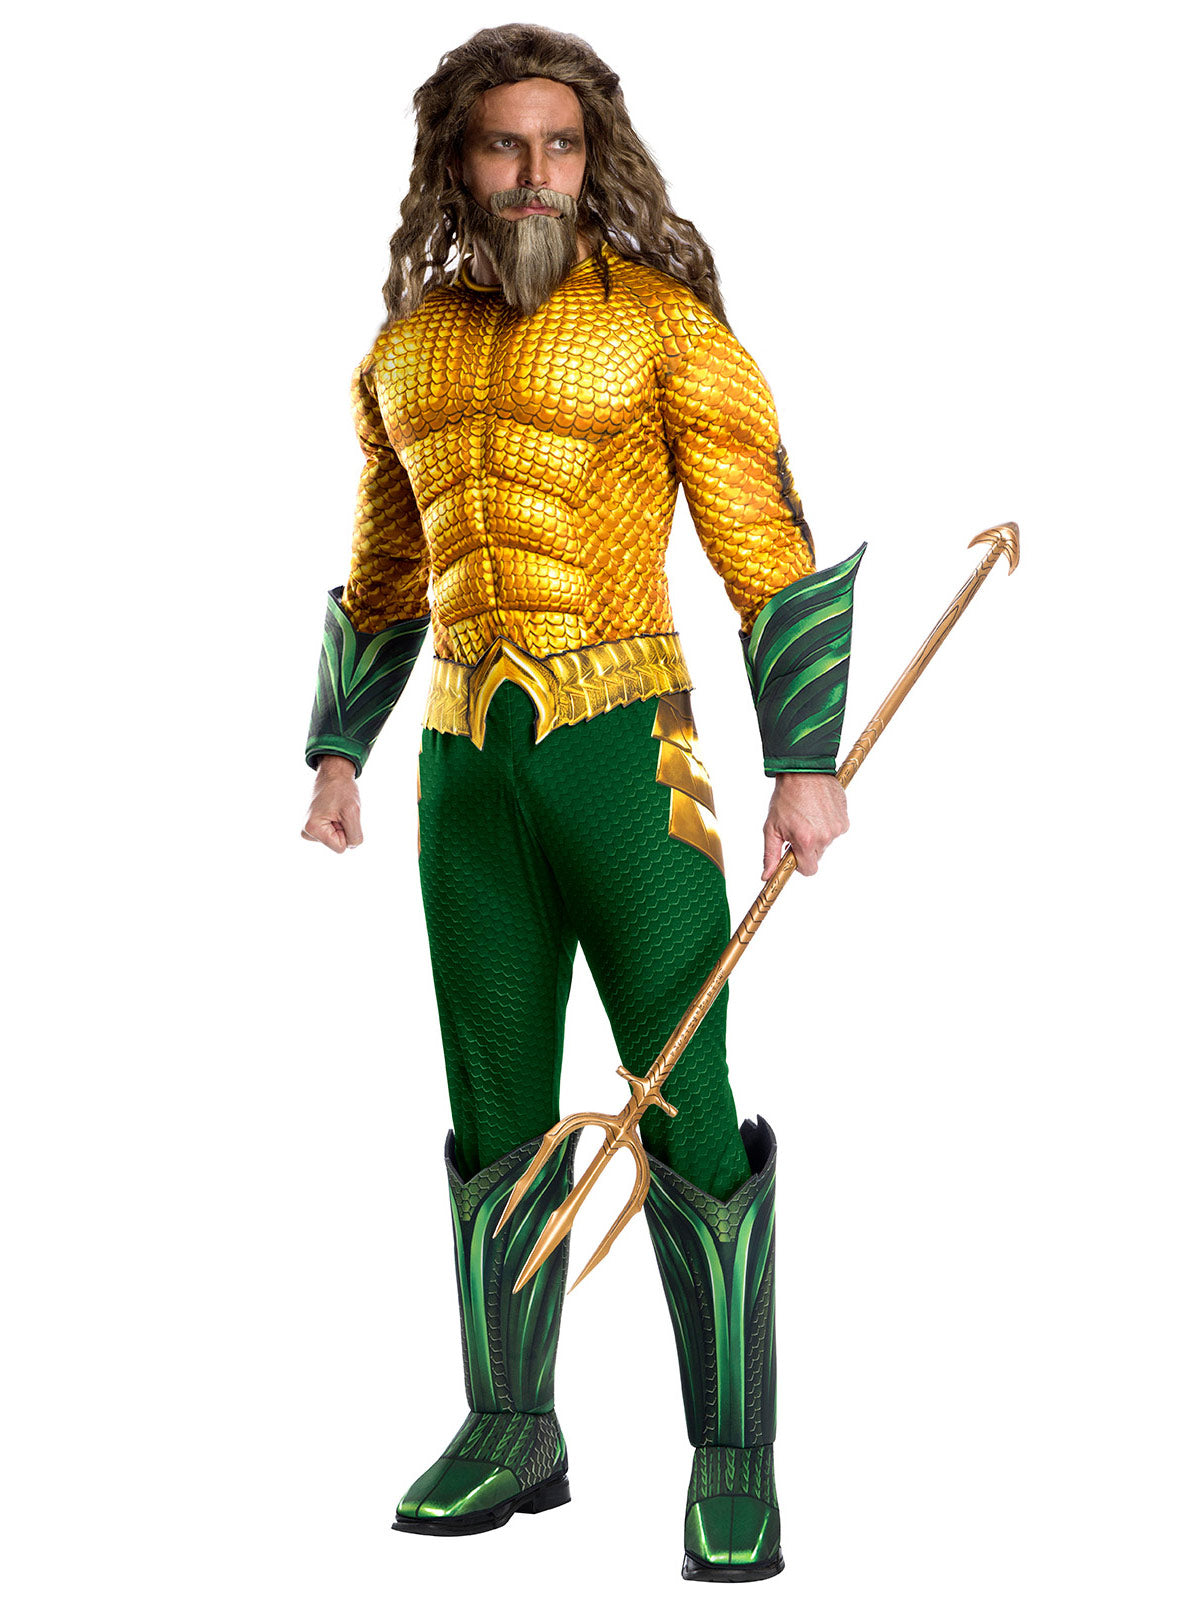 Aquaman Costume - Buy Online Only